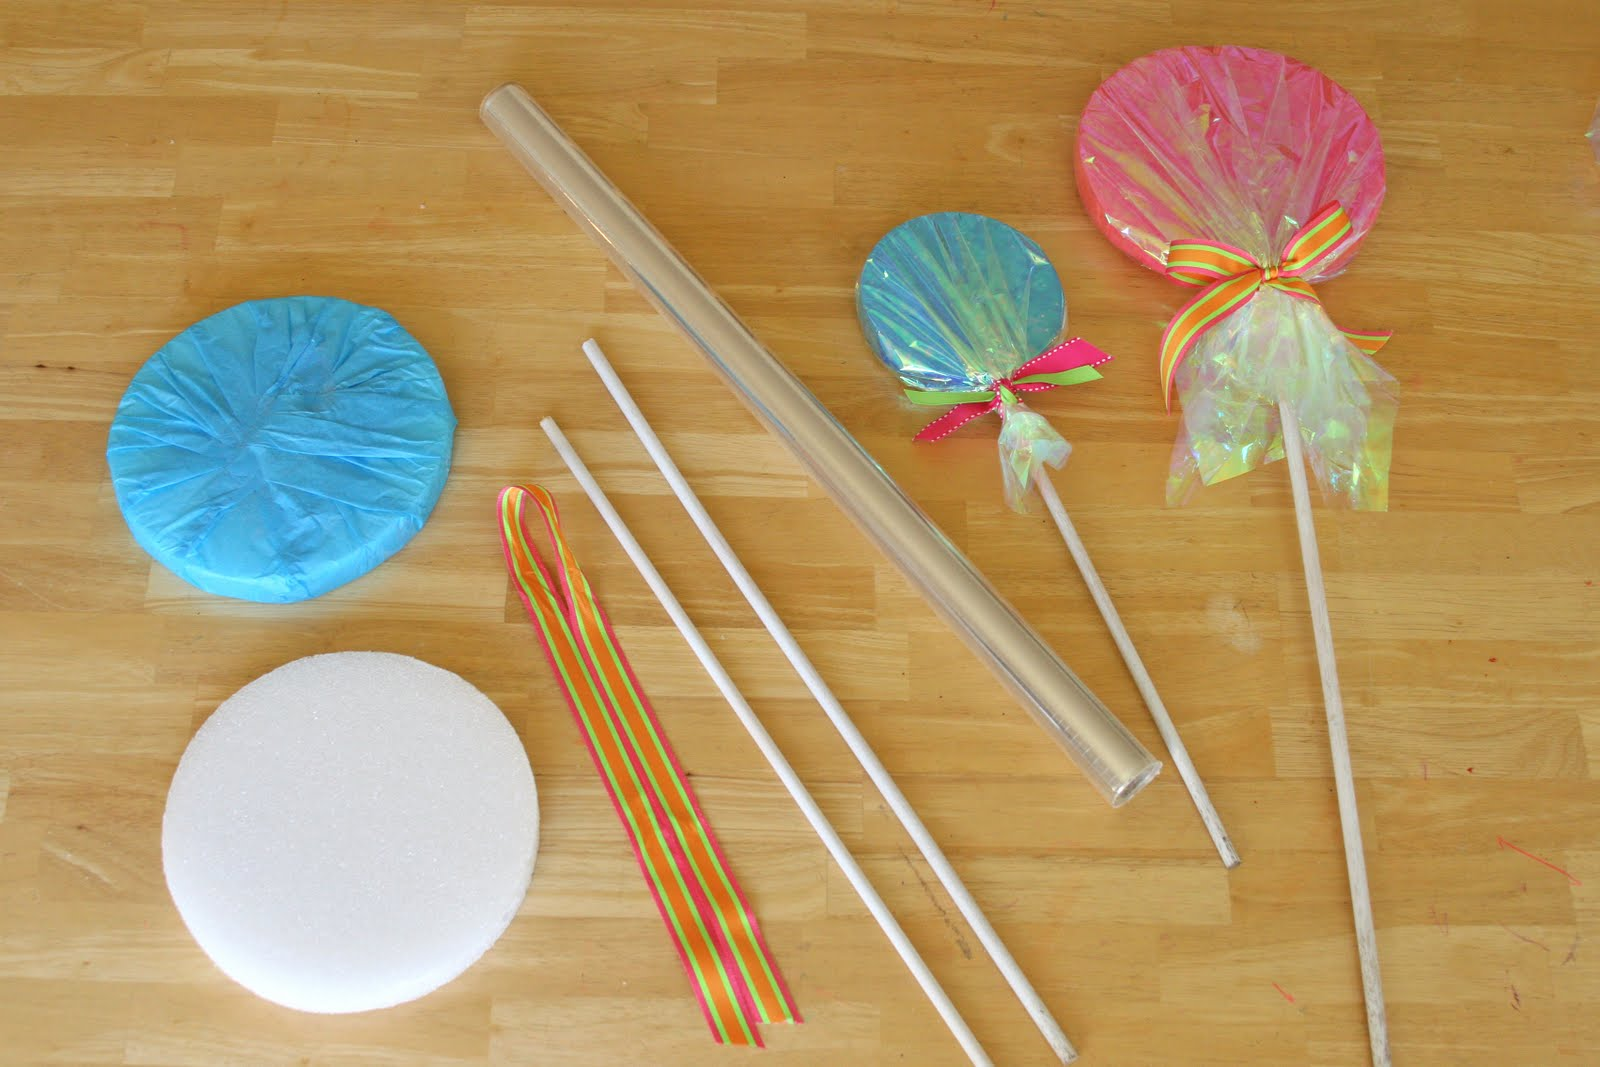 How To Make Giant Lollipop Decorations Glorious Treats